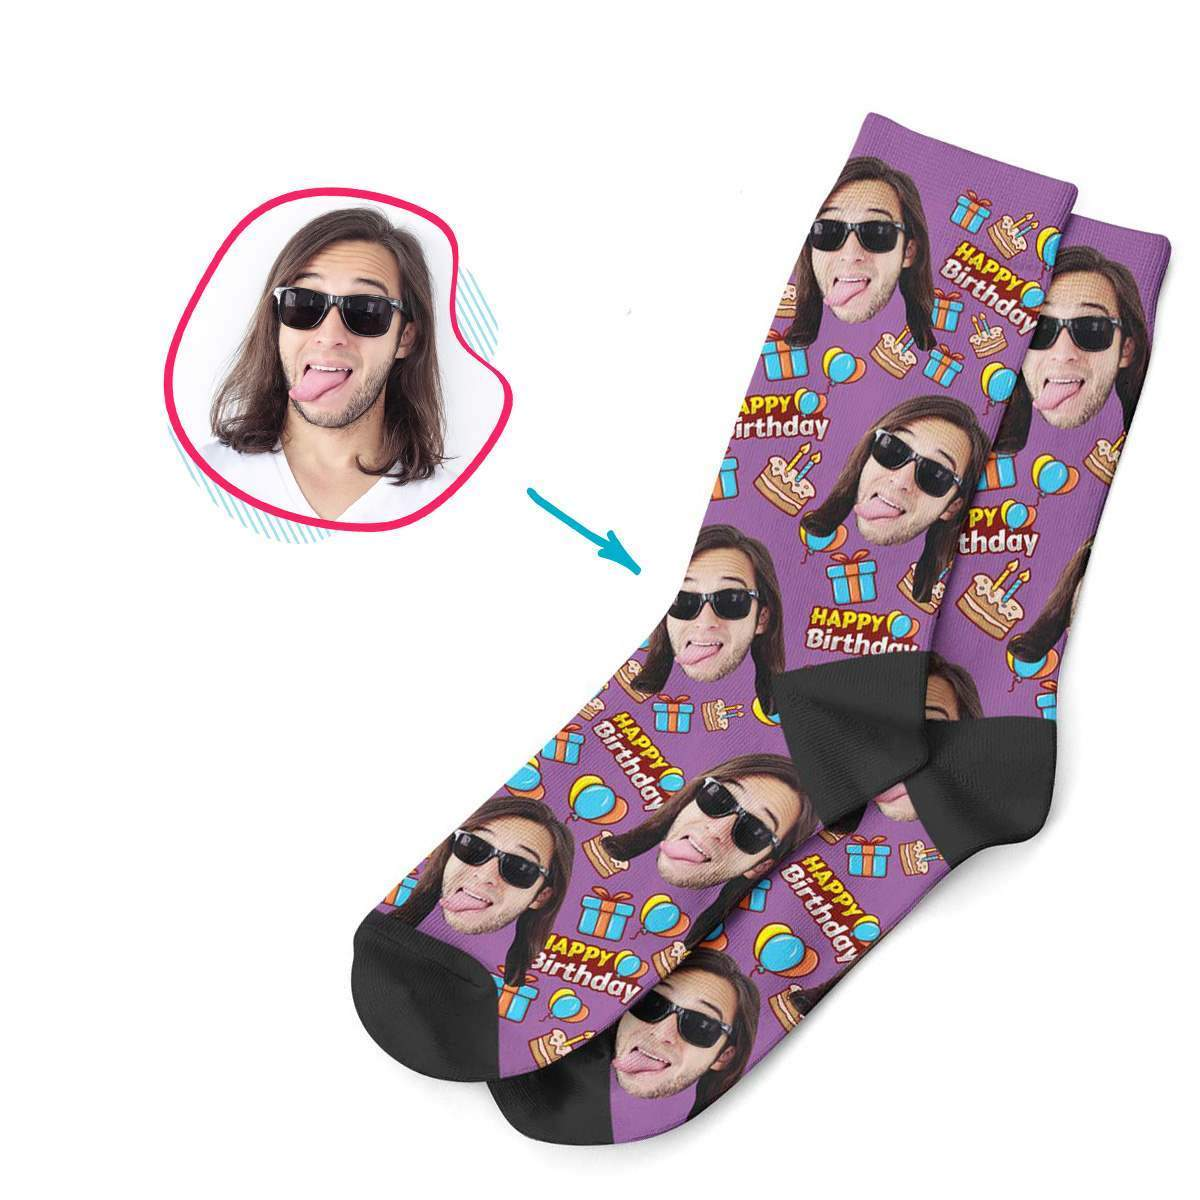 purple Birthday socks personalized with photo of face printed on them